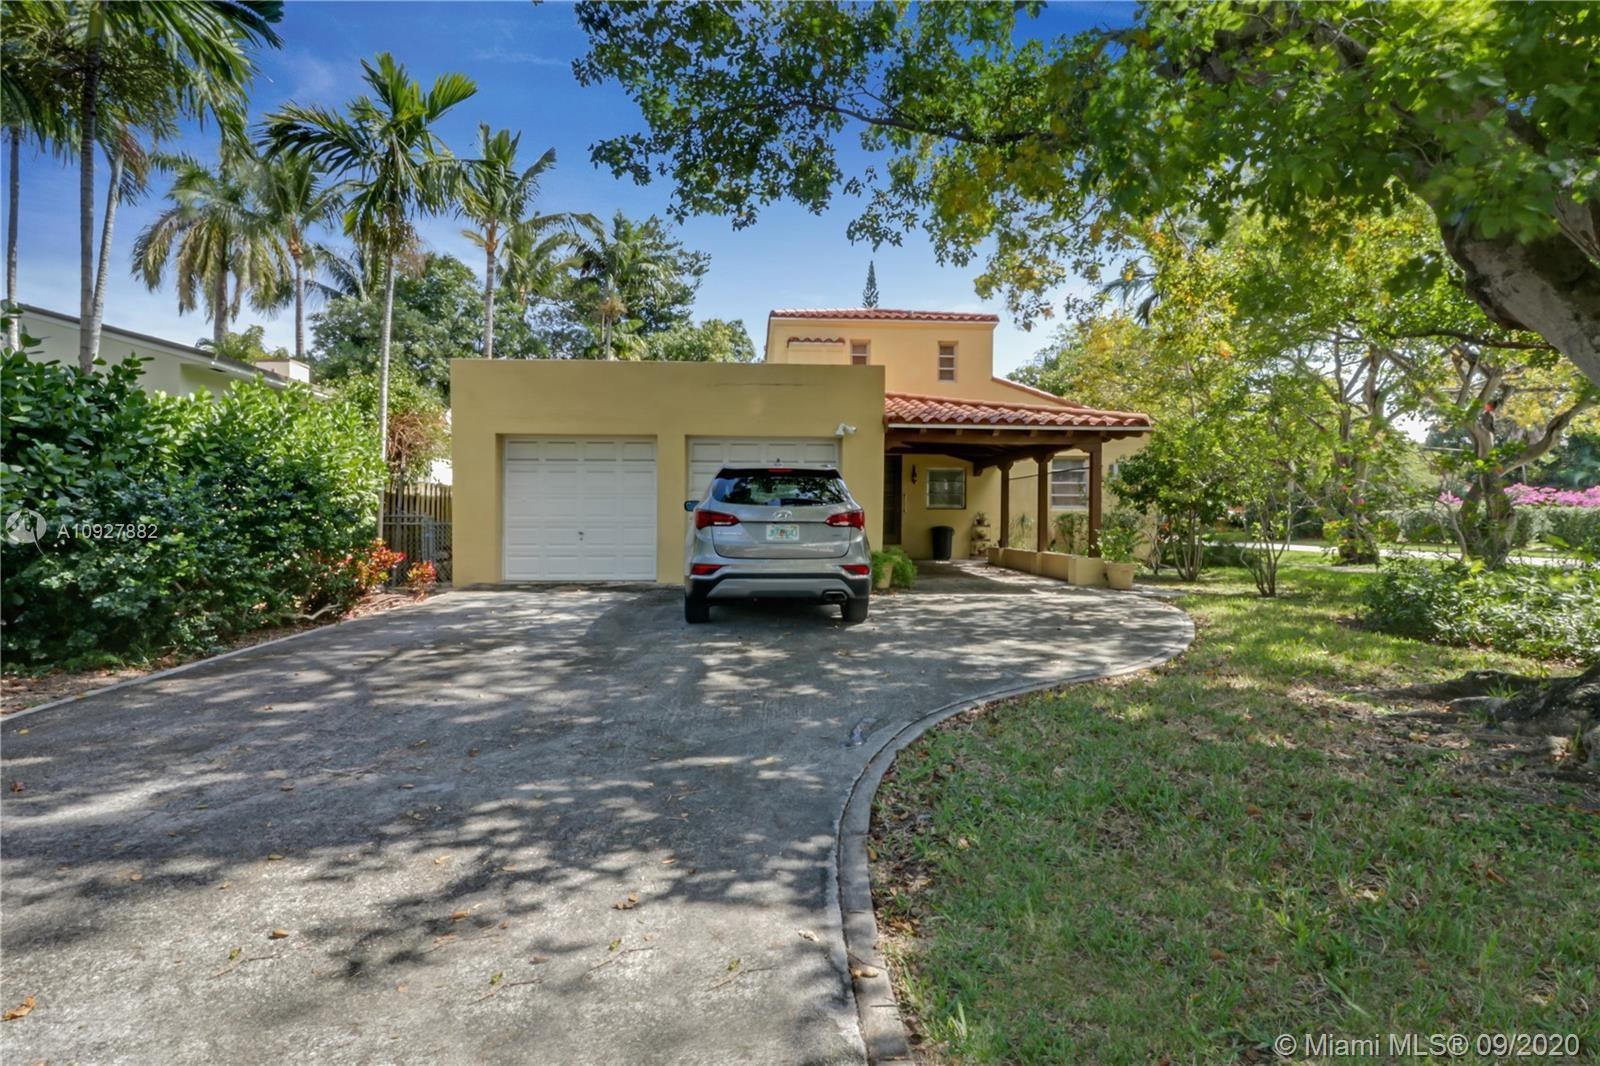 What a fabulous 2 story family home in the heart of Miami Beach,just a short drive to the beach & wa